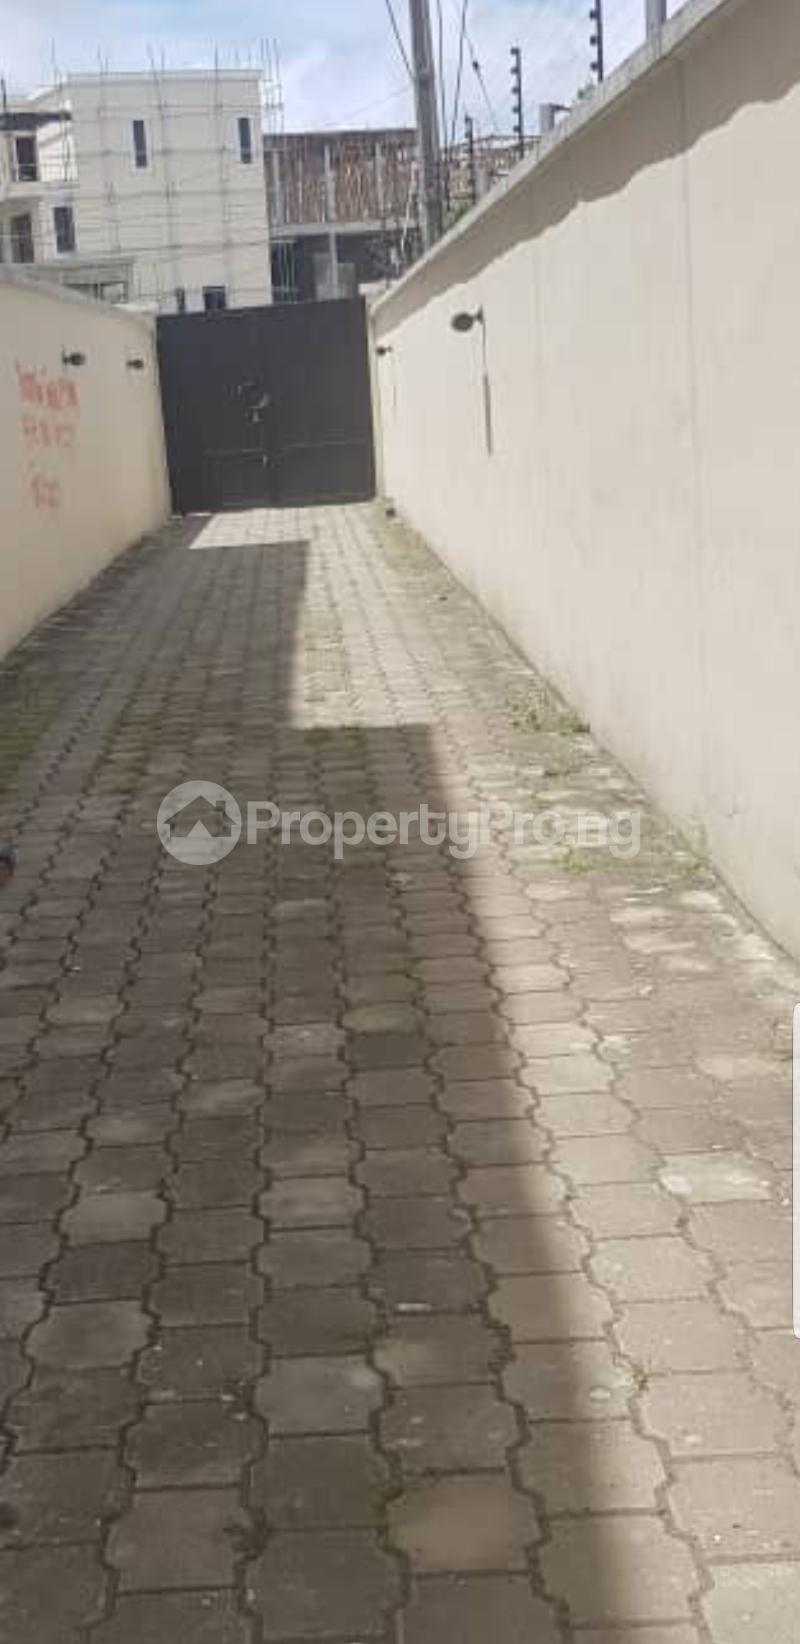 5 bedroom Semi Detached Duplex House for sale Olori Mojisola Onikoyi, Ikoyi, Lagos.  Mojisola Onikoyi Estate Ikoyi Lagos - 1